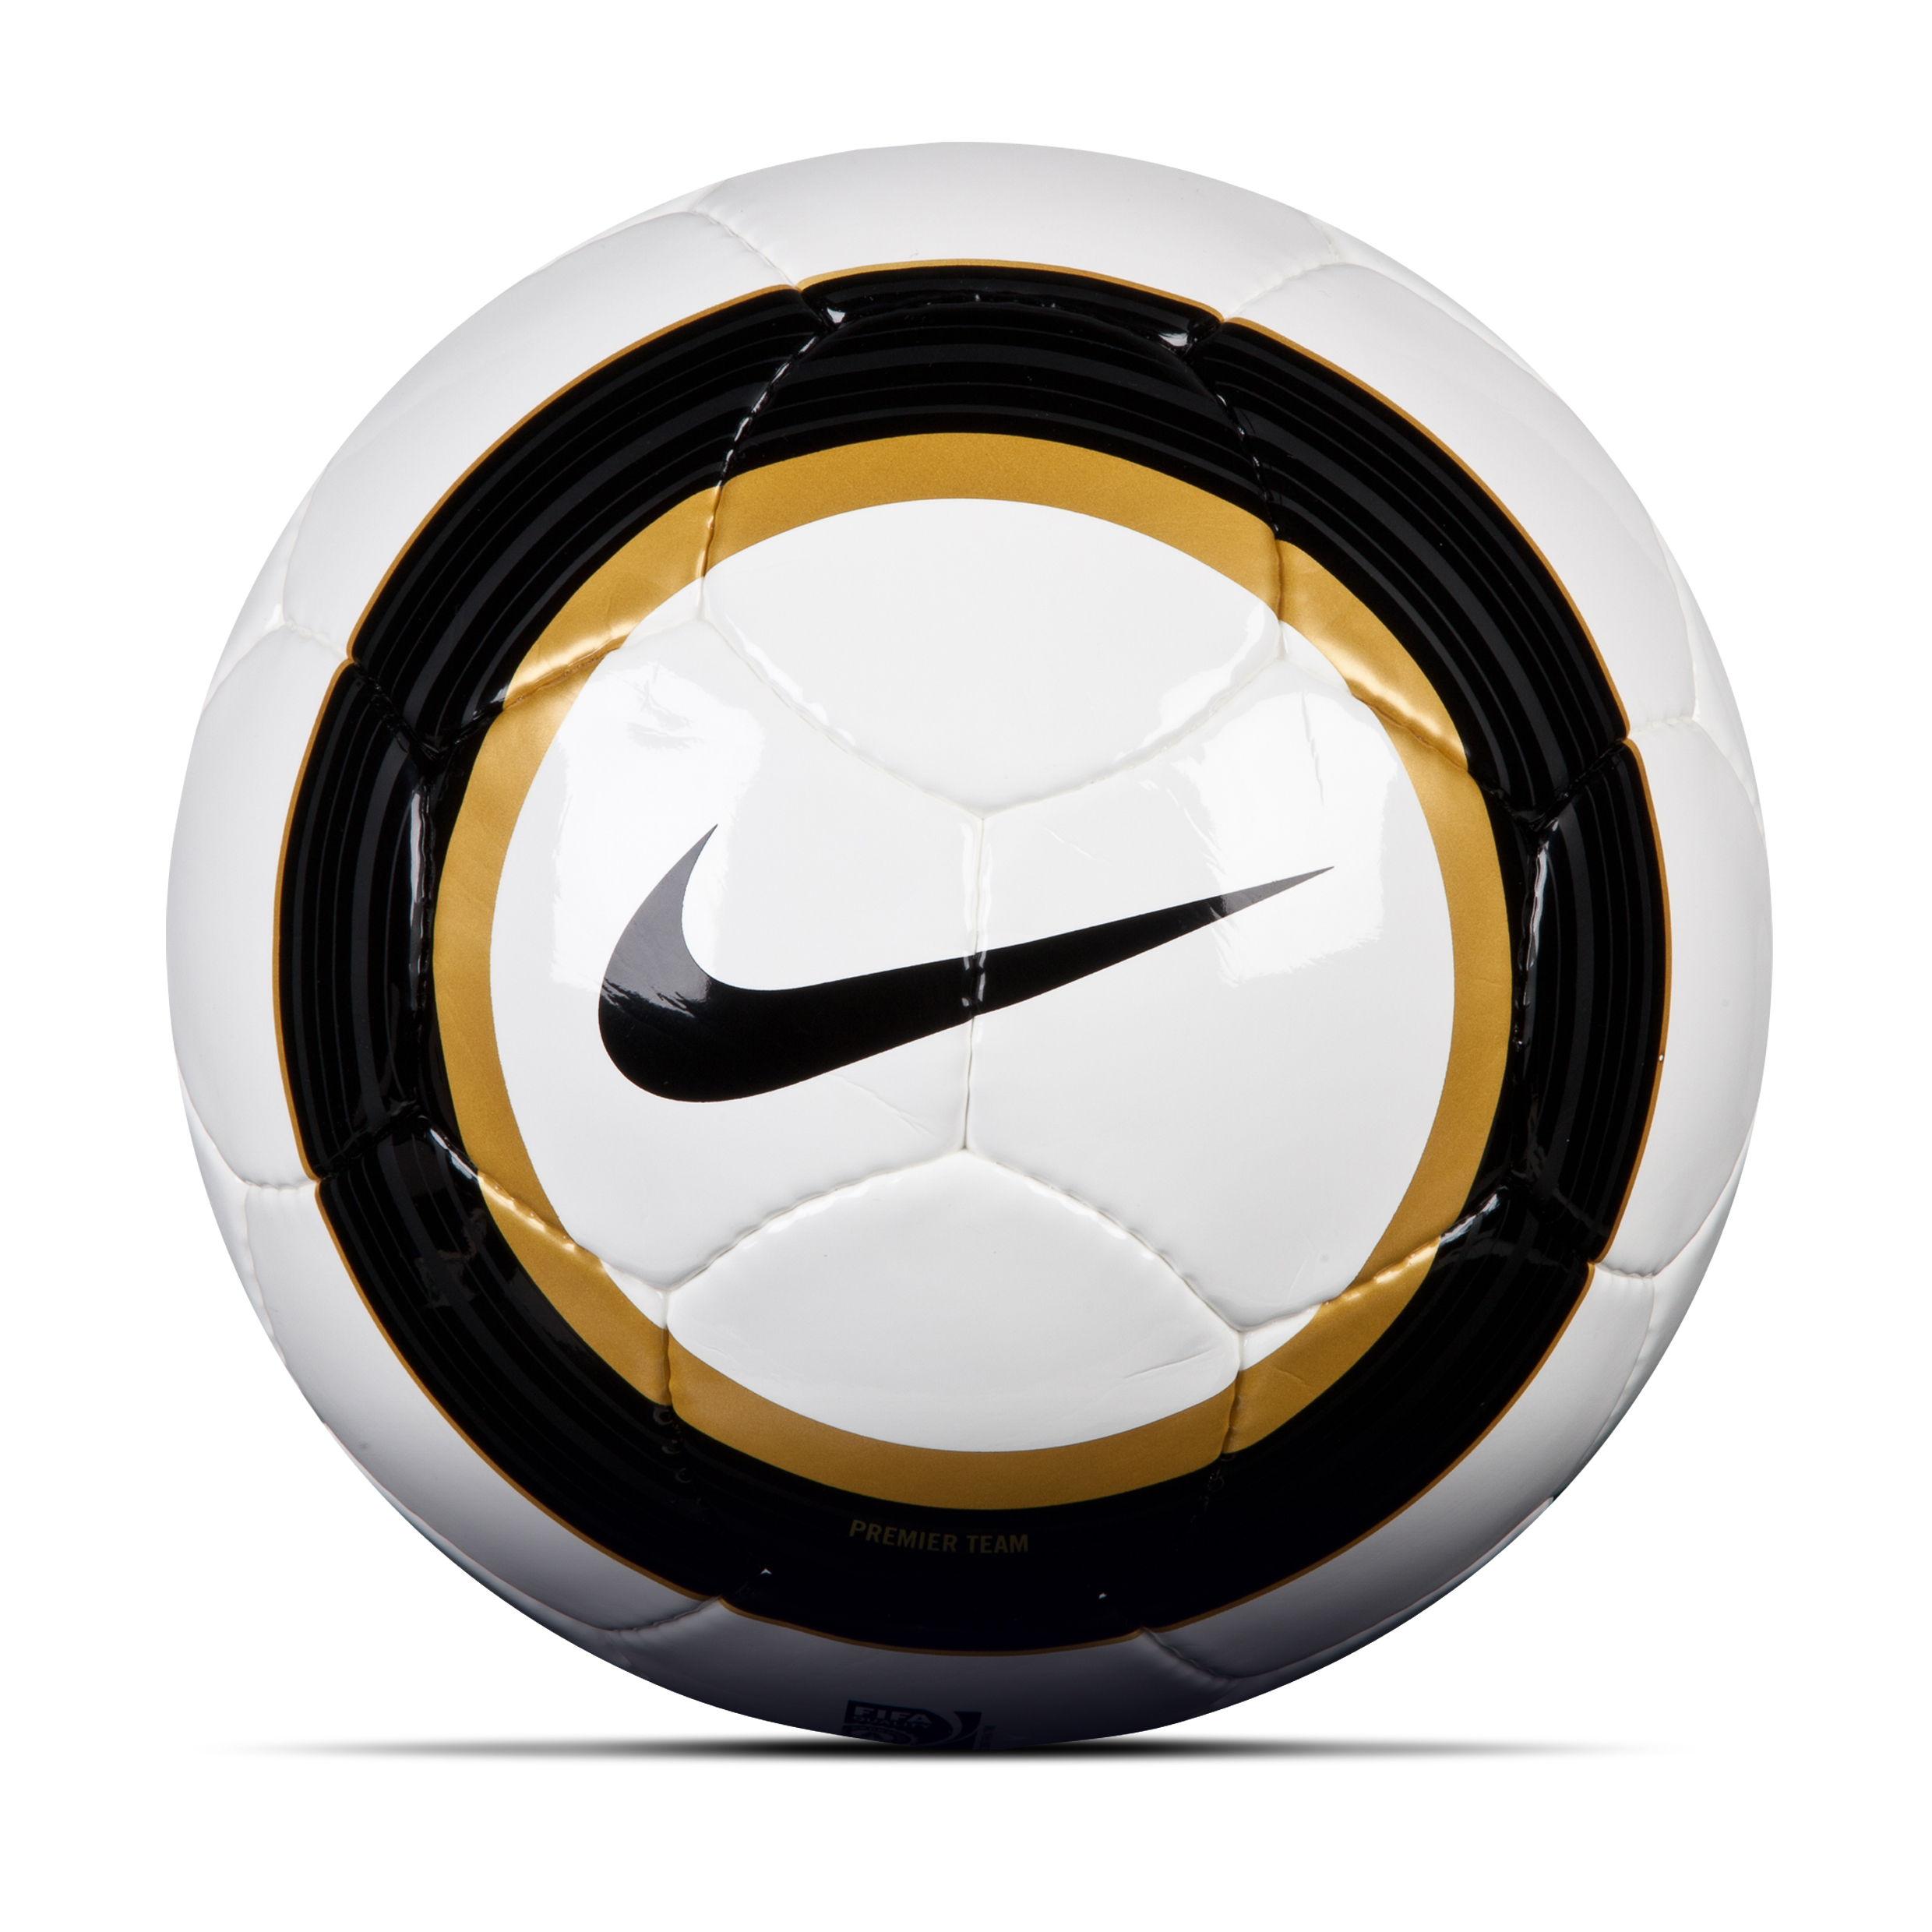 Manchester City Premier Team Football-White/Gold/Black White